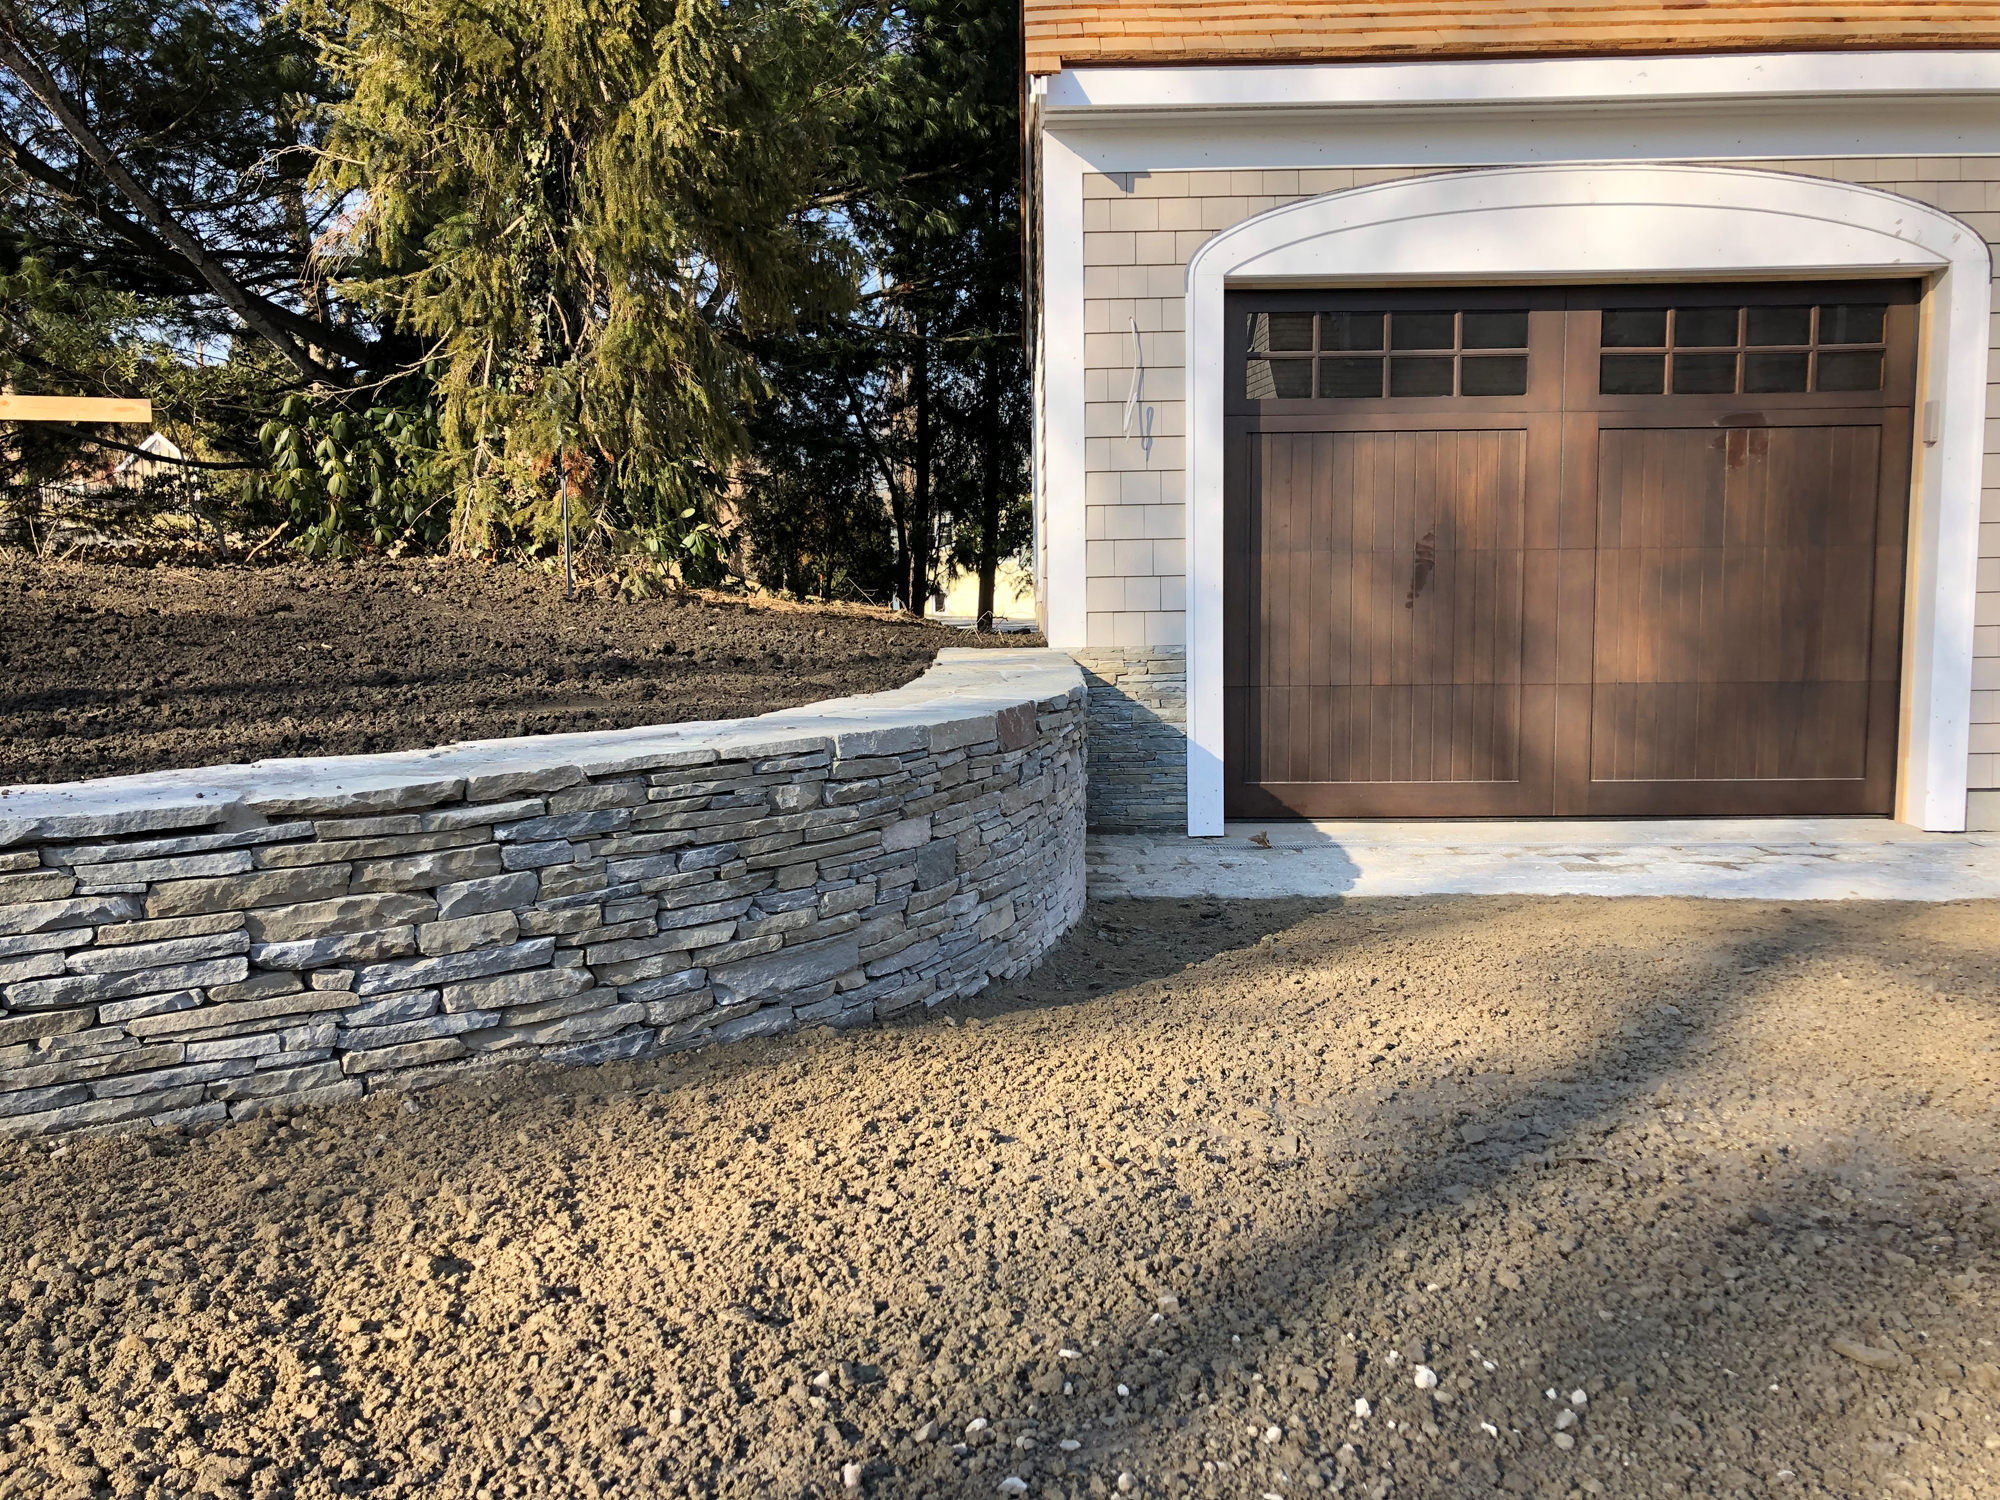 stone wall next to garage